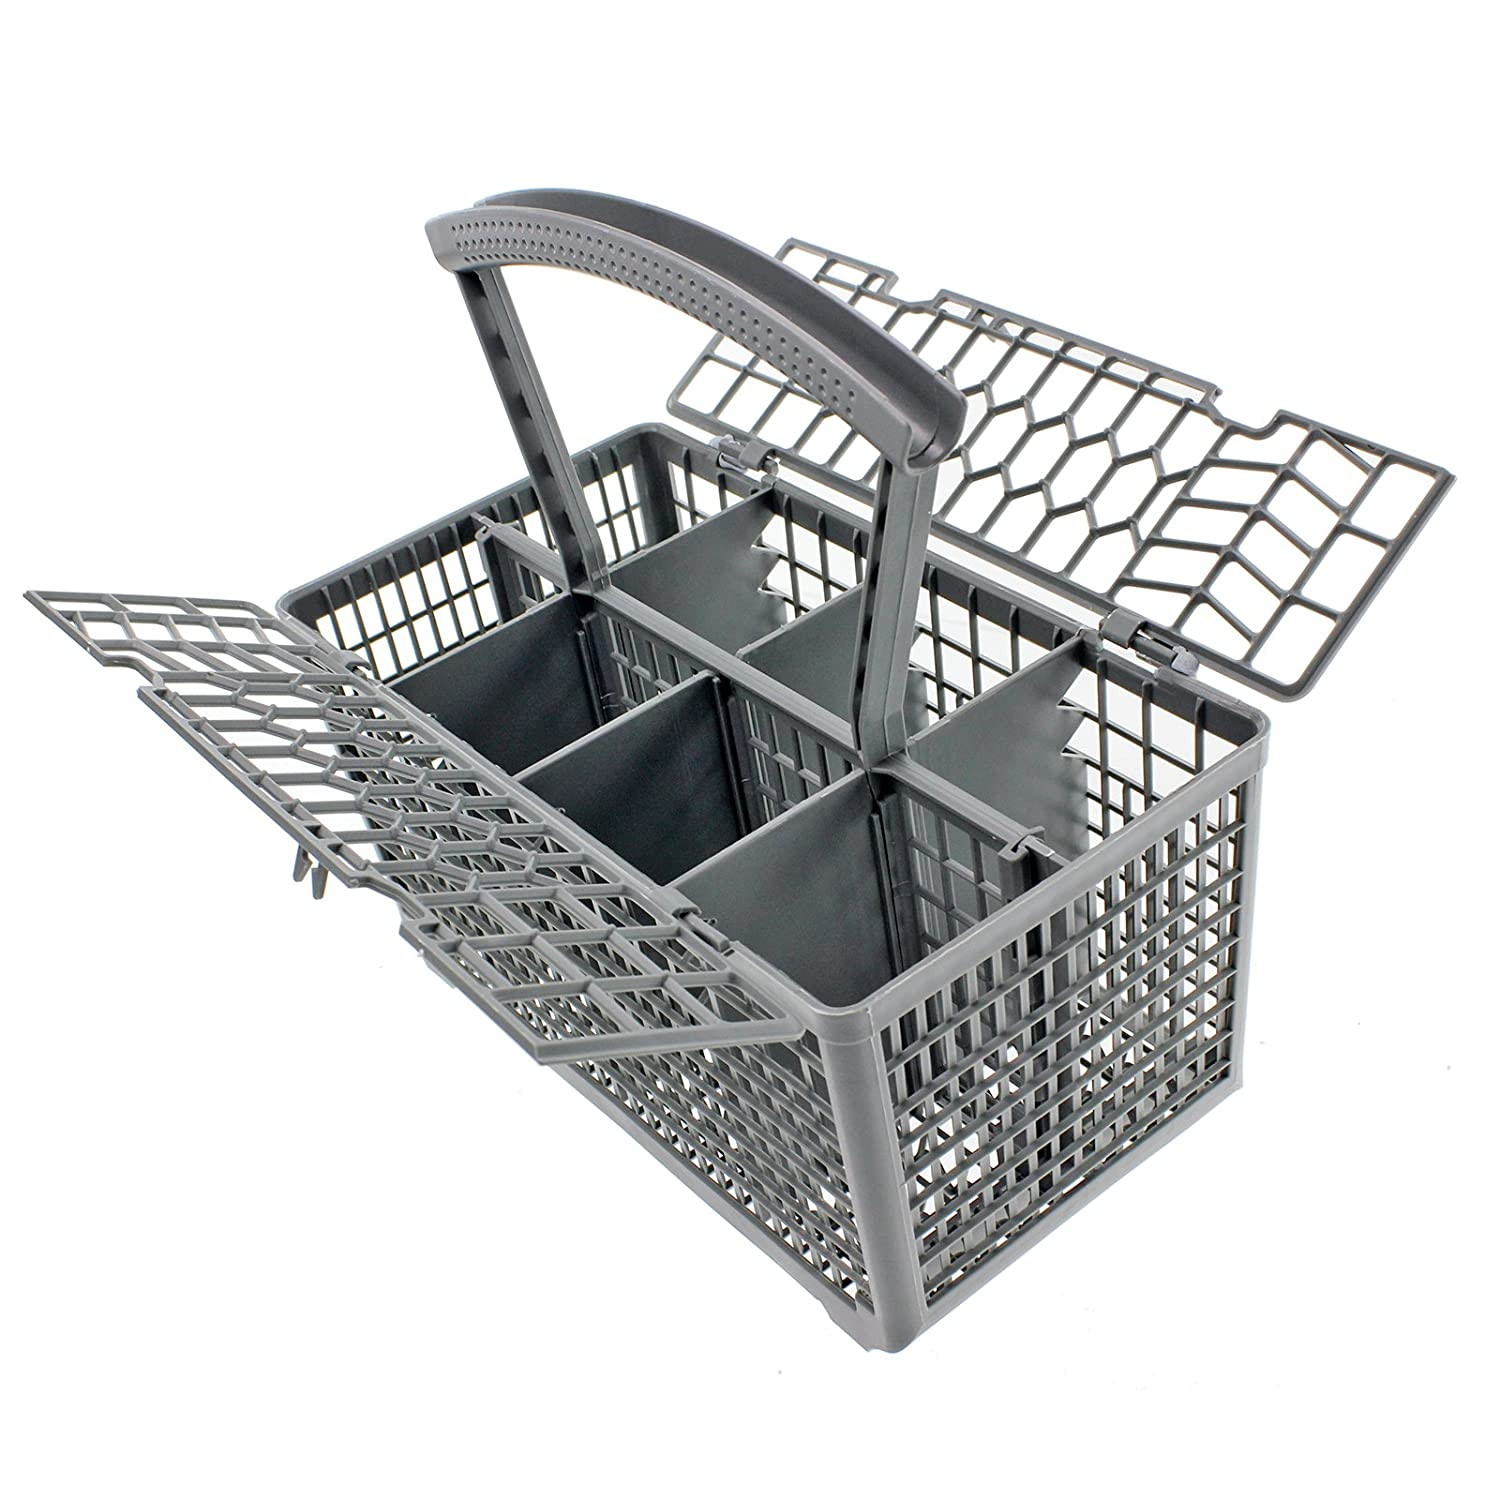 Spares2go Cutlery Basket Cage & Lid for Kenwood Dishwasher (Removable Handle, 235 x 240 x 145